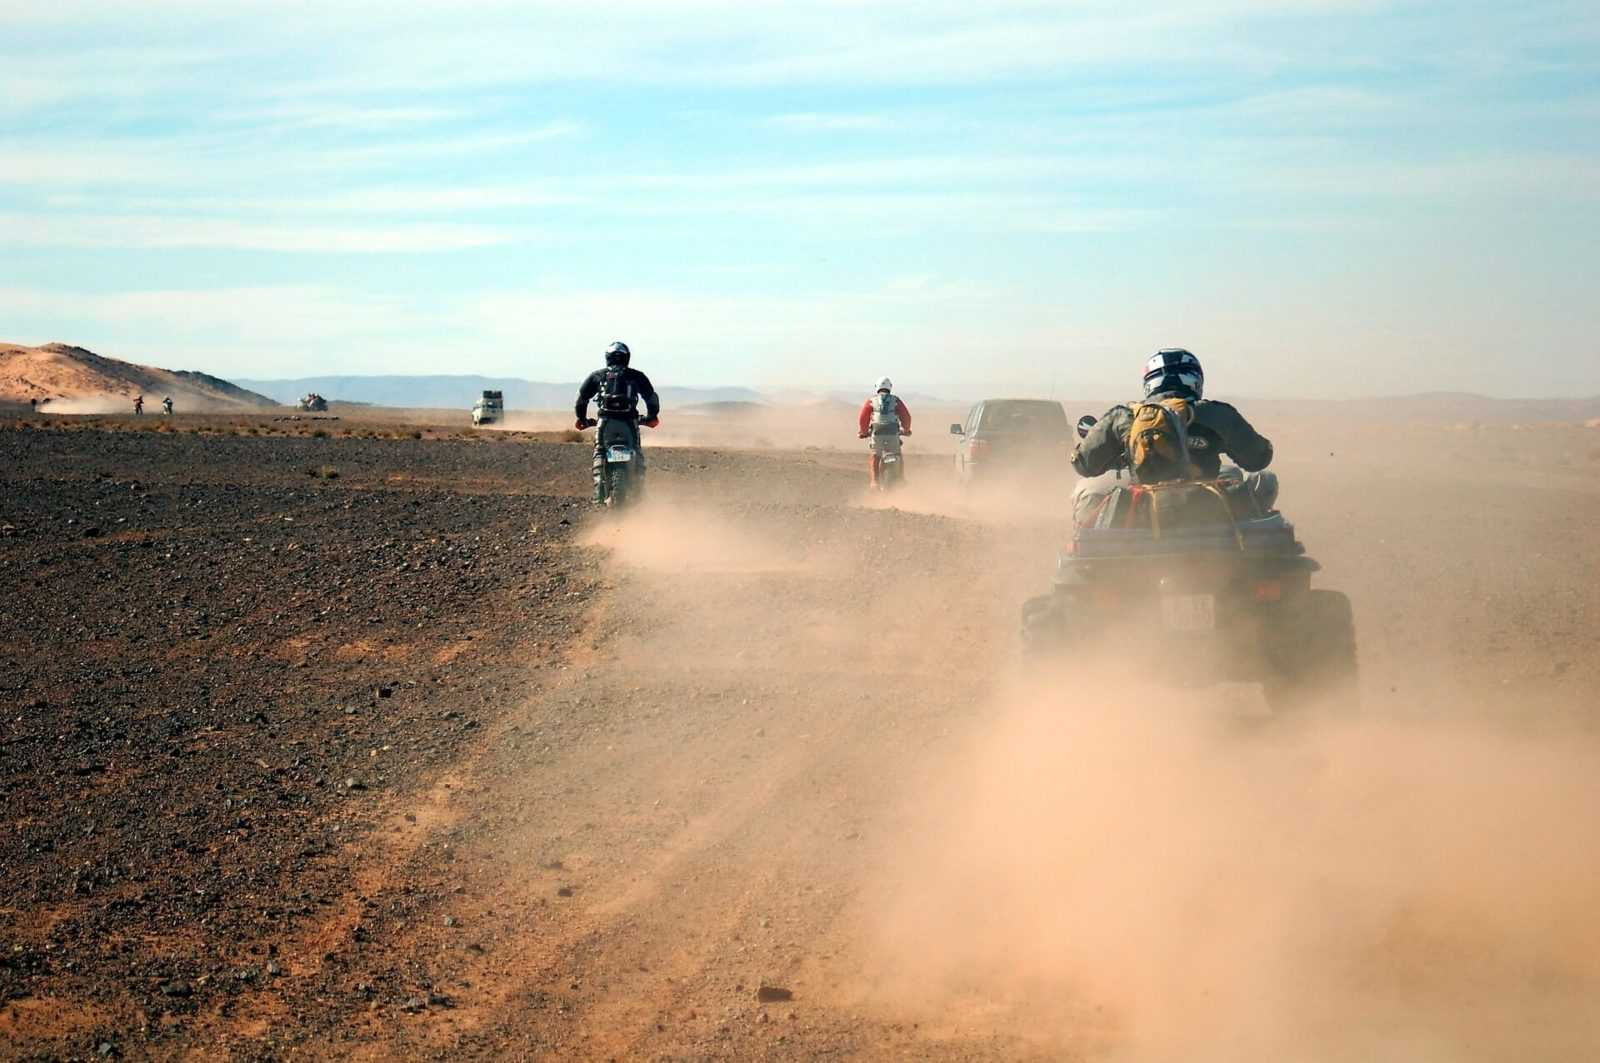 Marrakech Quad Biking tours